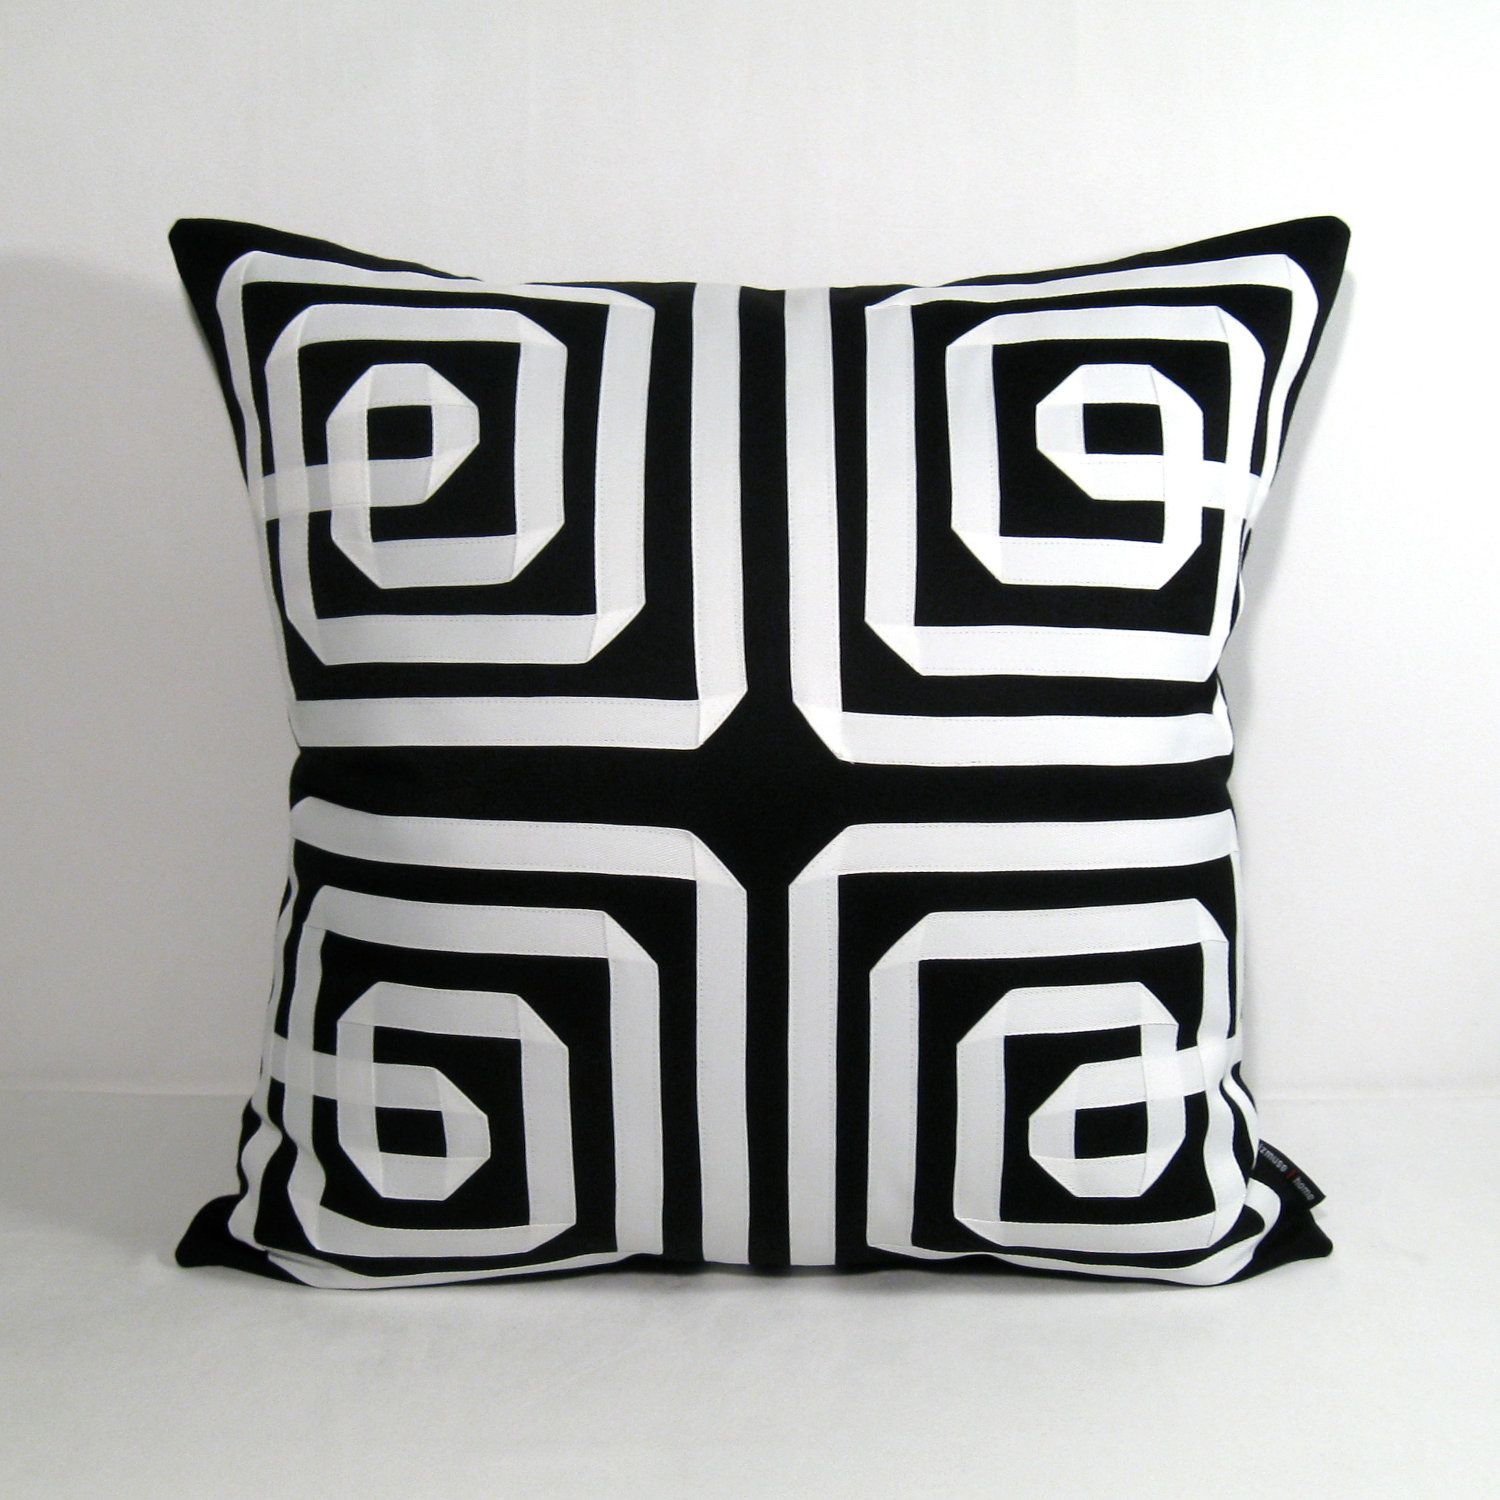 Black White Pillow Cover Decorative Outdoor Cushion Geometric